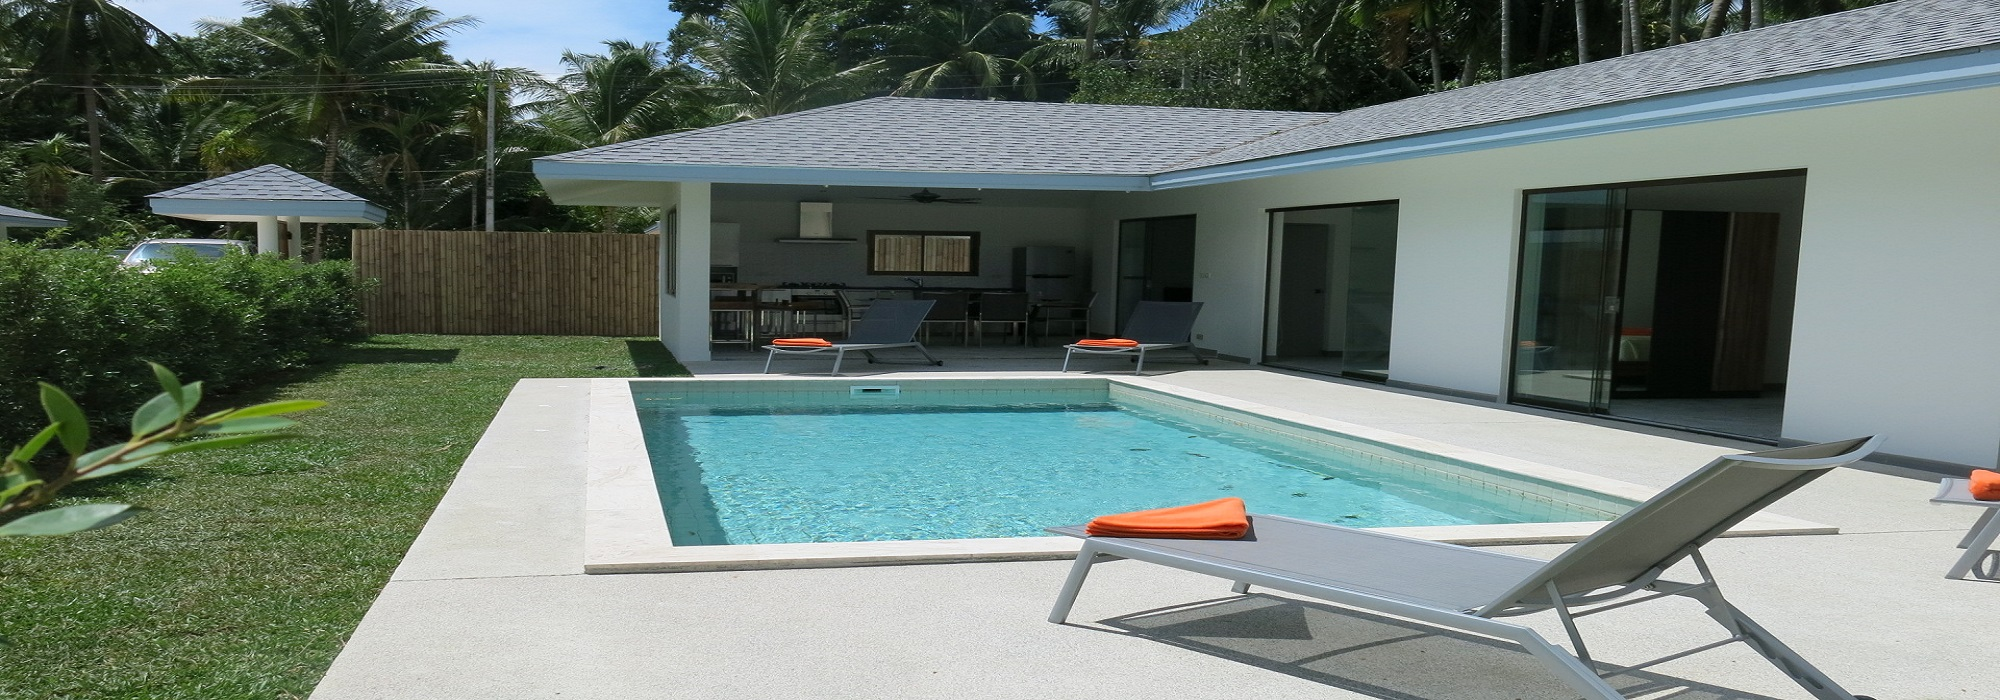 For rent villas Maenam 2 to 9 bedrooms swimming pool 1km beach